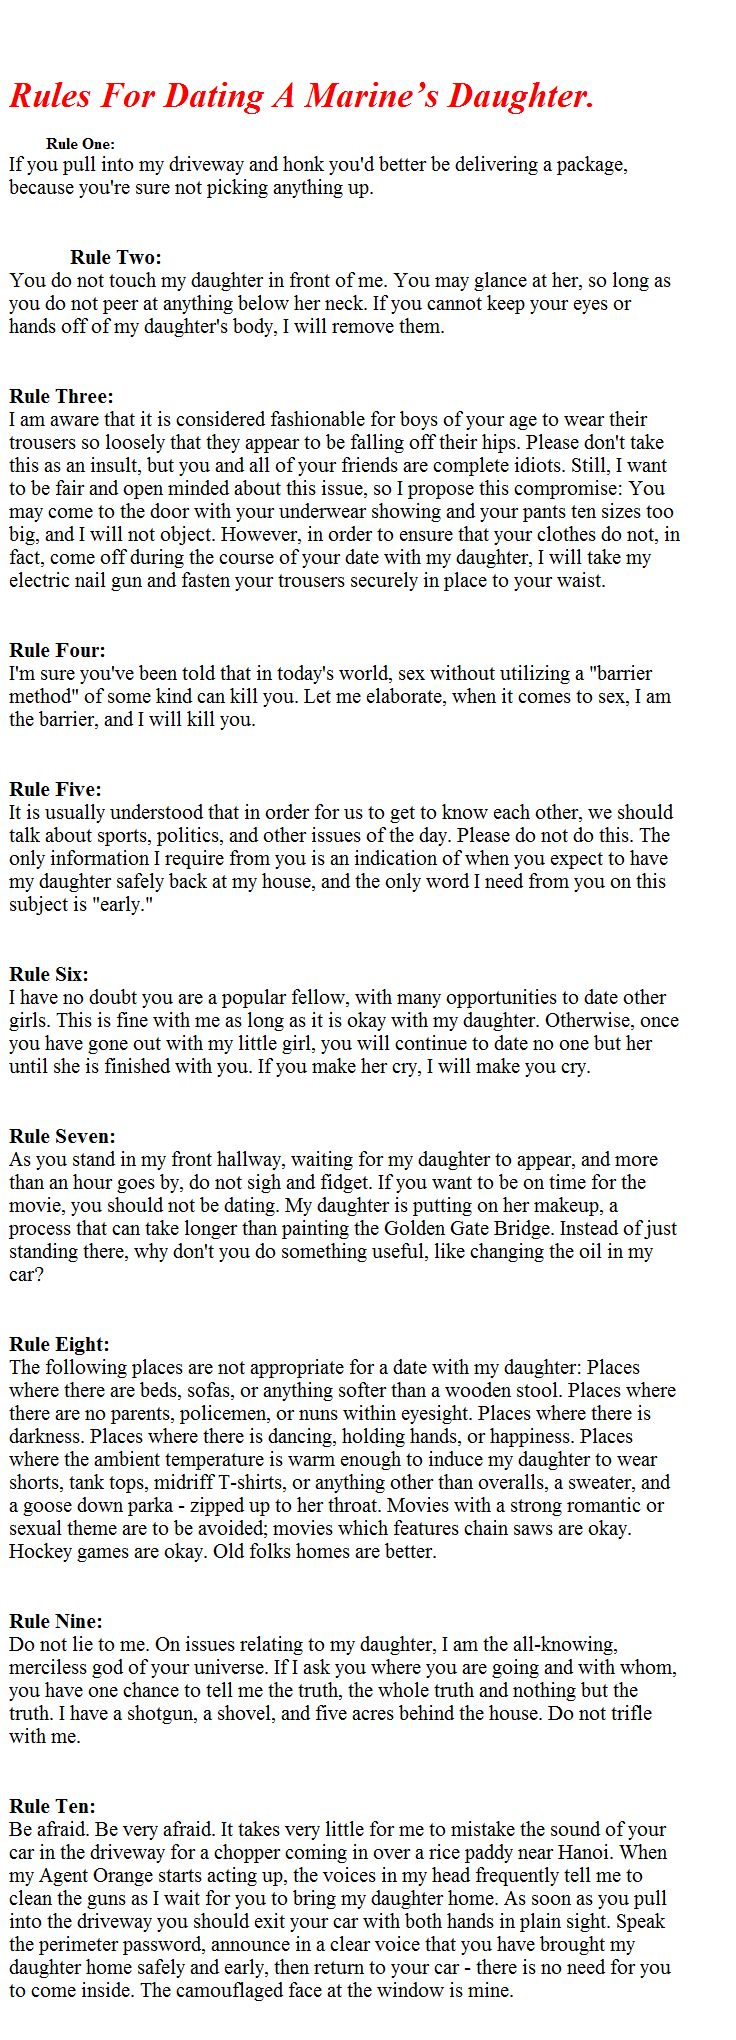 Rules for dating a marine daughter. hazlo bien con david rees latino dating.